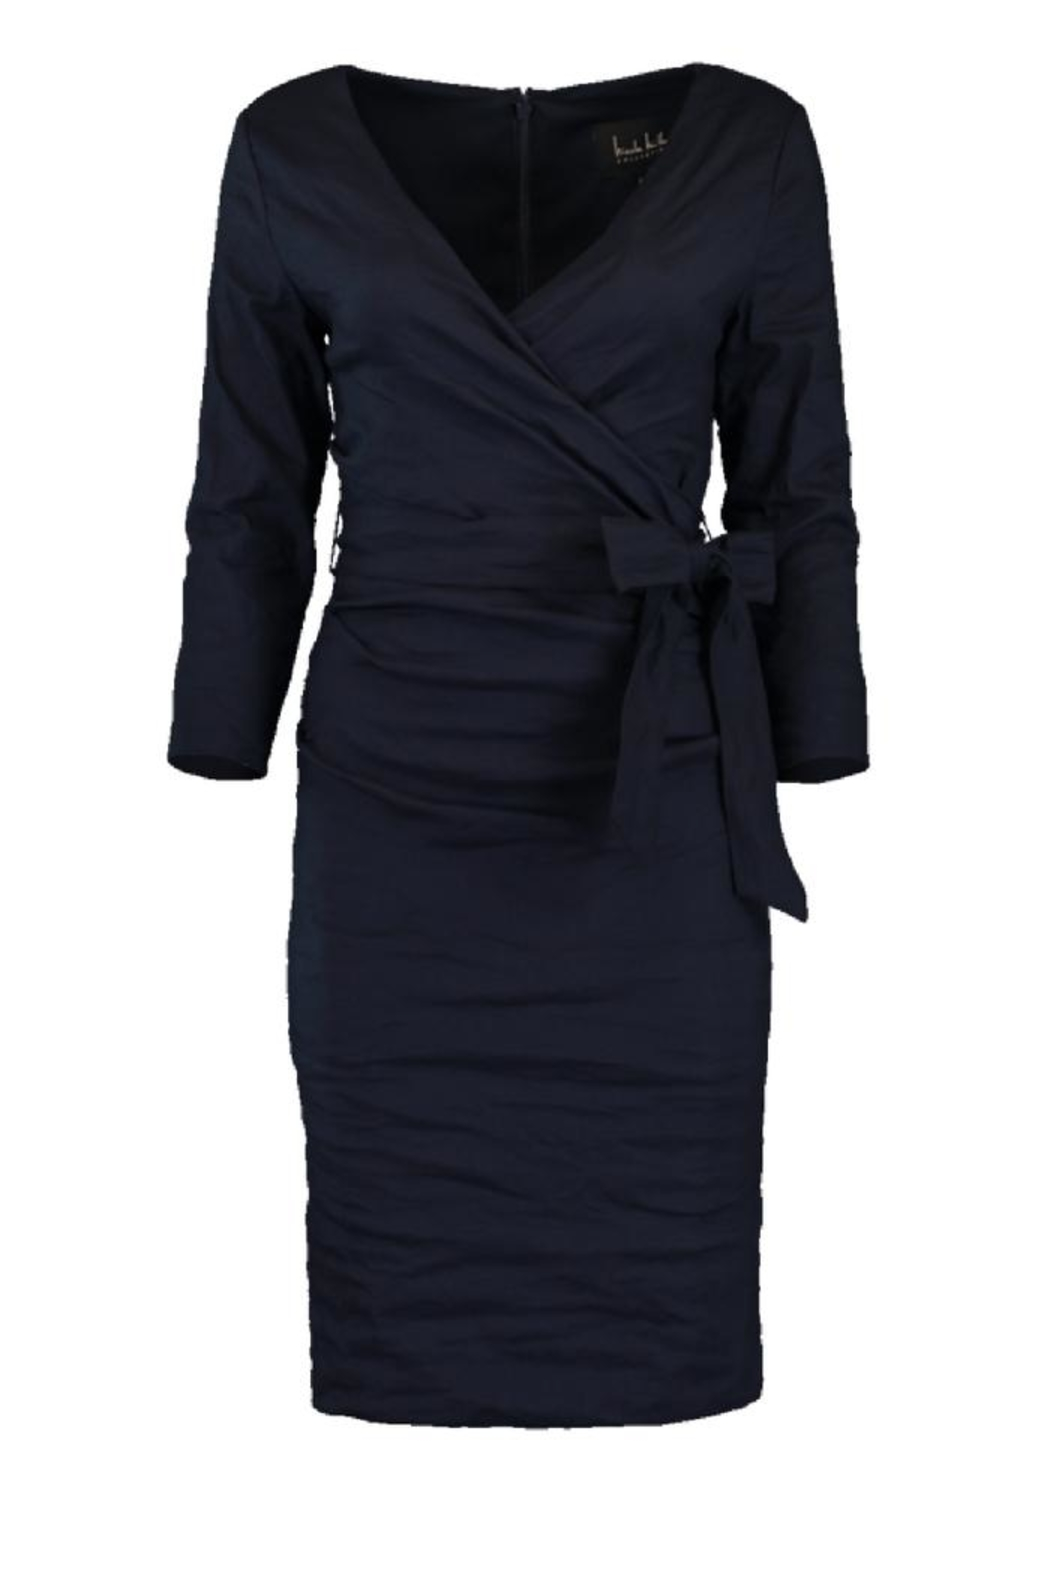 d4eb50973e9 Nicole Miller Wrap Dress from Wallingford by The Dressing Room ...